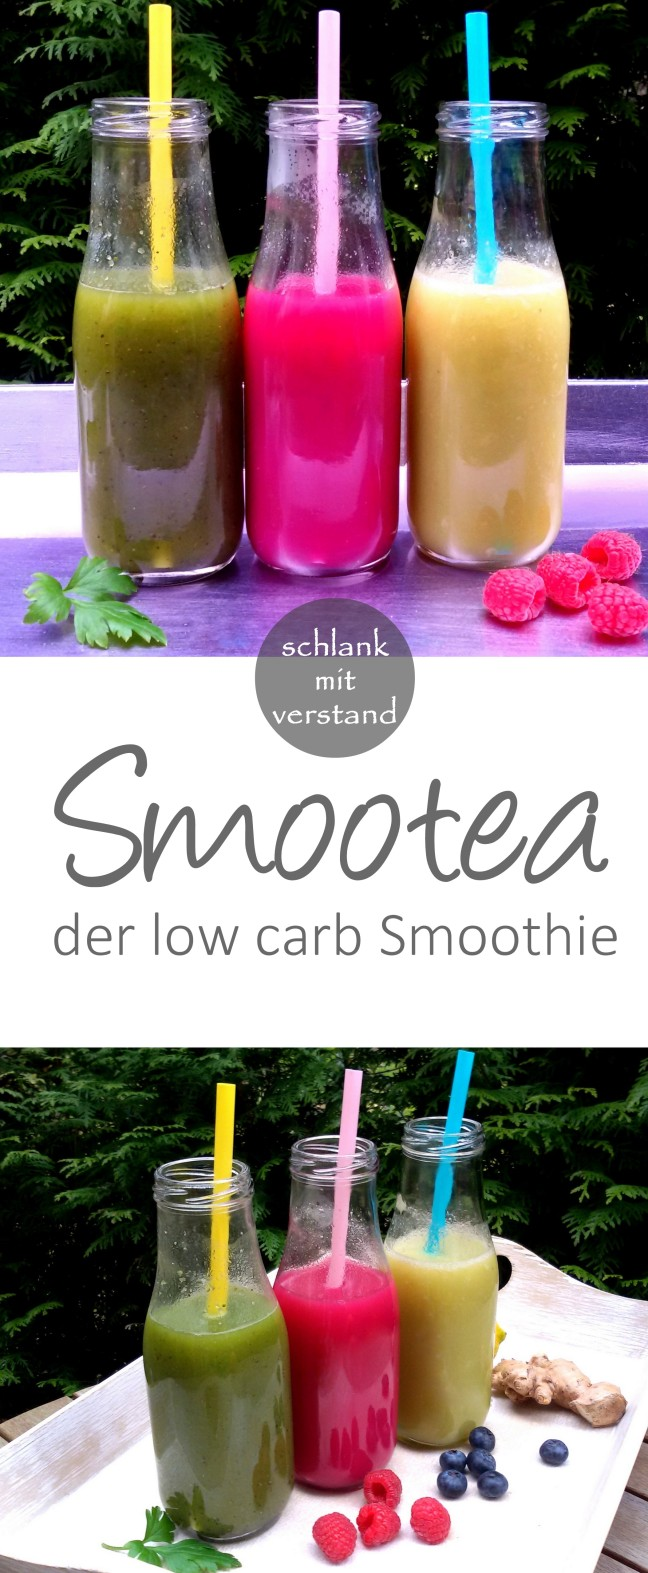 Smootea low carb Smoothie